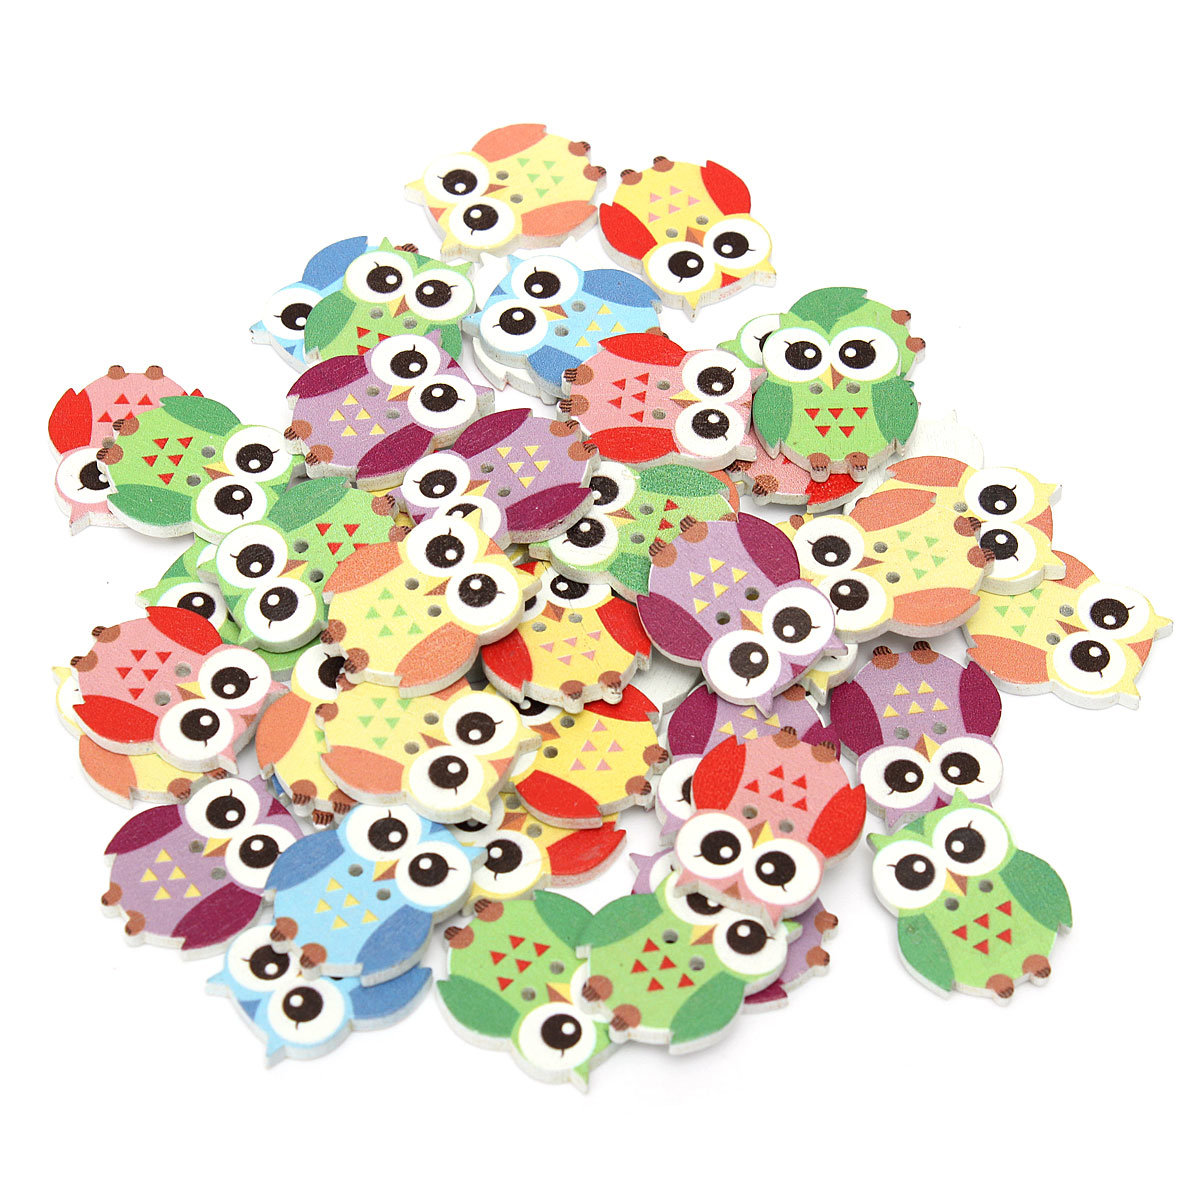 50Pcs Multicolor Owl Animal Wooden Buttons 2 Holes Sewing Scrapbooking Material